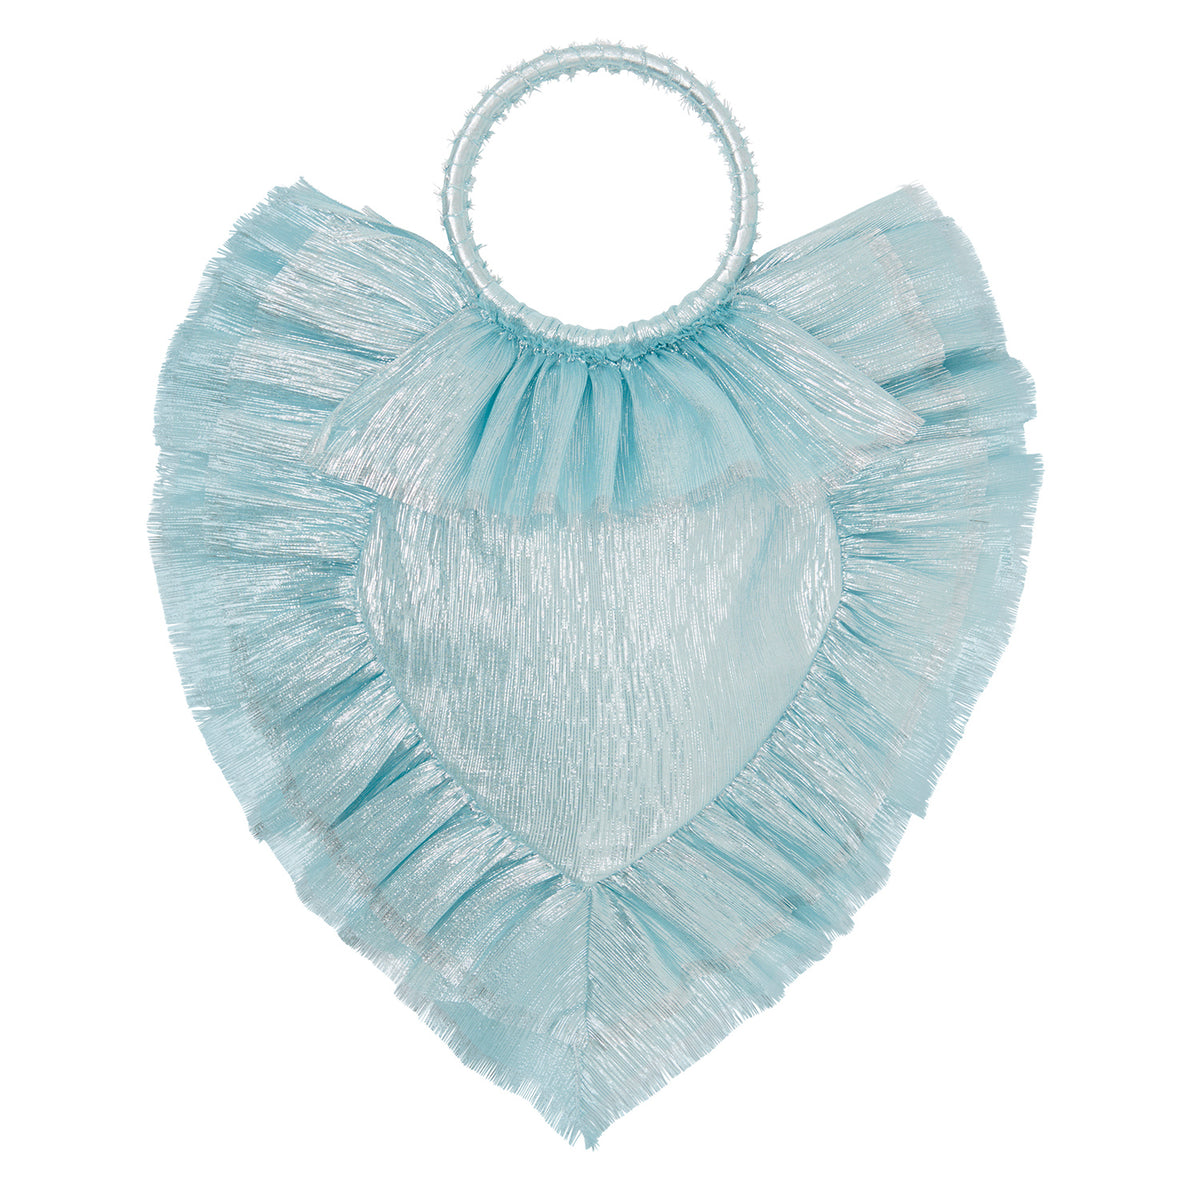 THE PALE BLUE METALLIC SILK SACRED HEART BAG